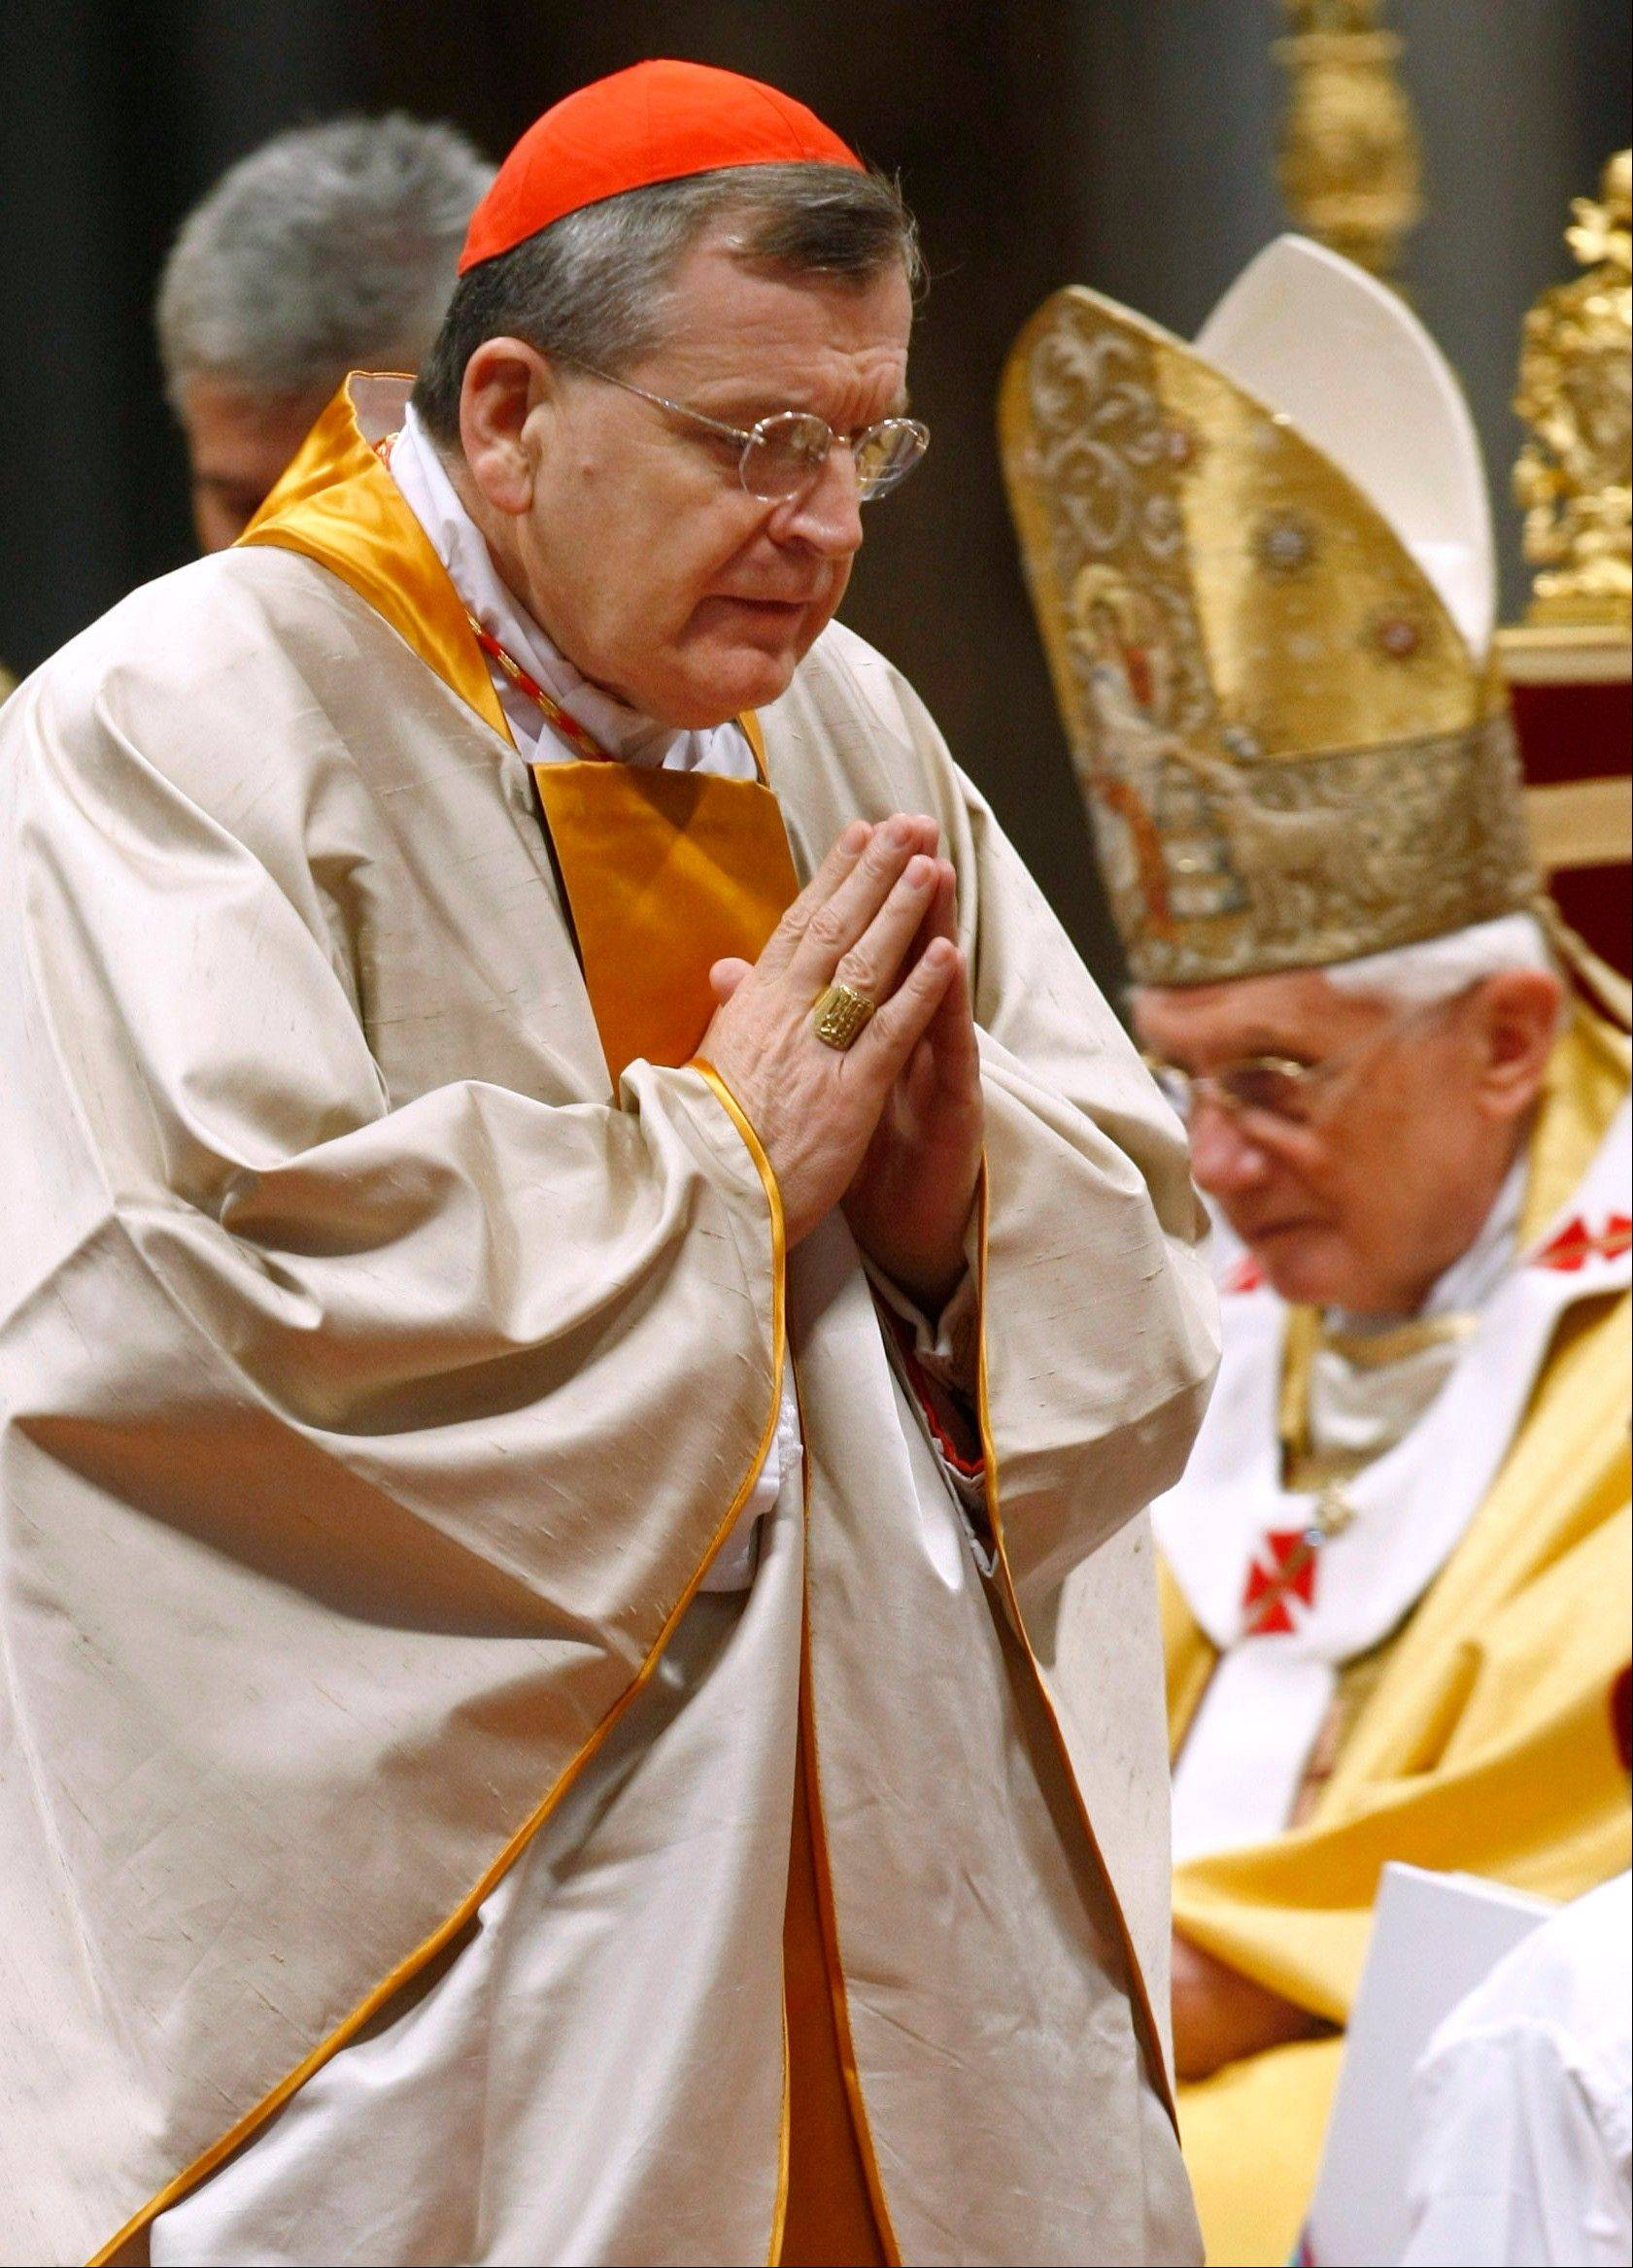 Newly appointed U.S. Cardinal Raymond Leo Burke walks past Pope Benedict XVI after receiving Cardinal's ring during a mass in St. Peter's Basilica, at the Vatican. Burke, the former St. Louis archbishop, is the first American to lead the Vatican supreme court.